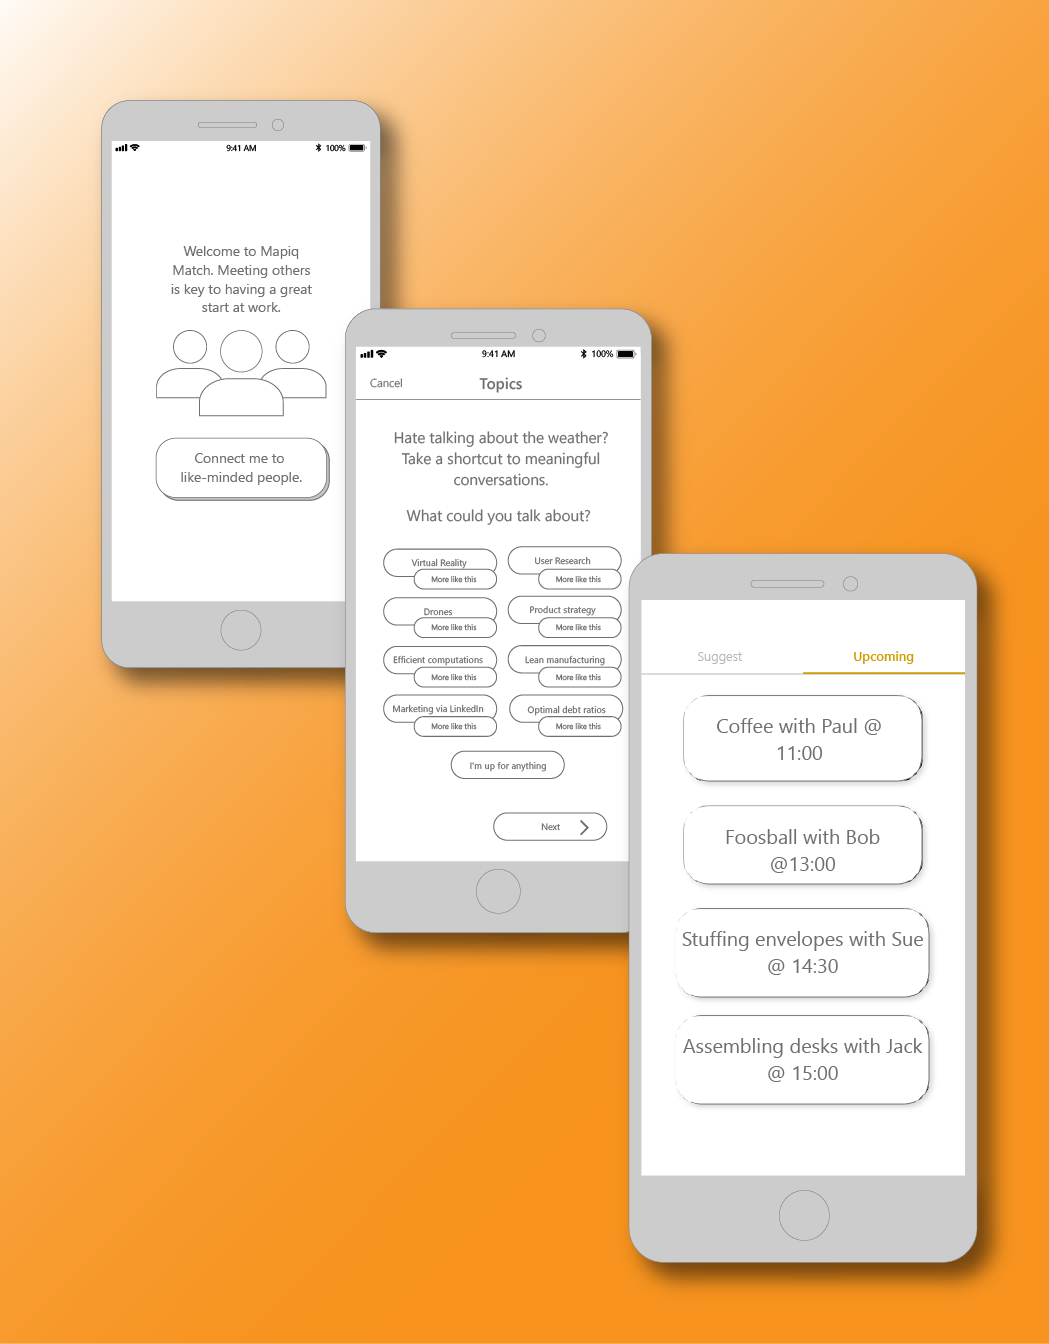 Creating occasions for new hires to make meaningful connections - My concept for a smartphone application